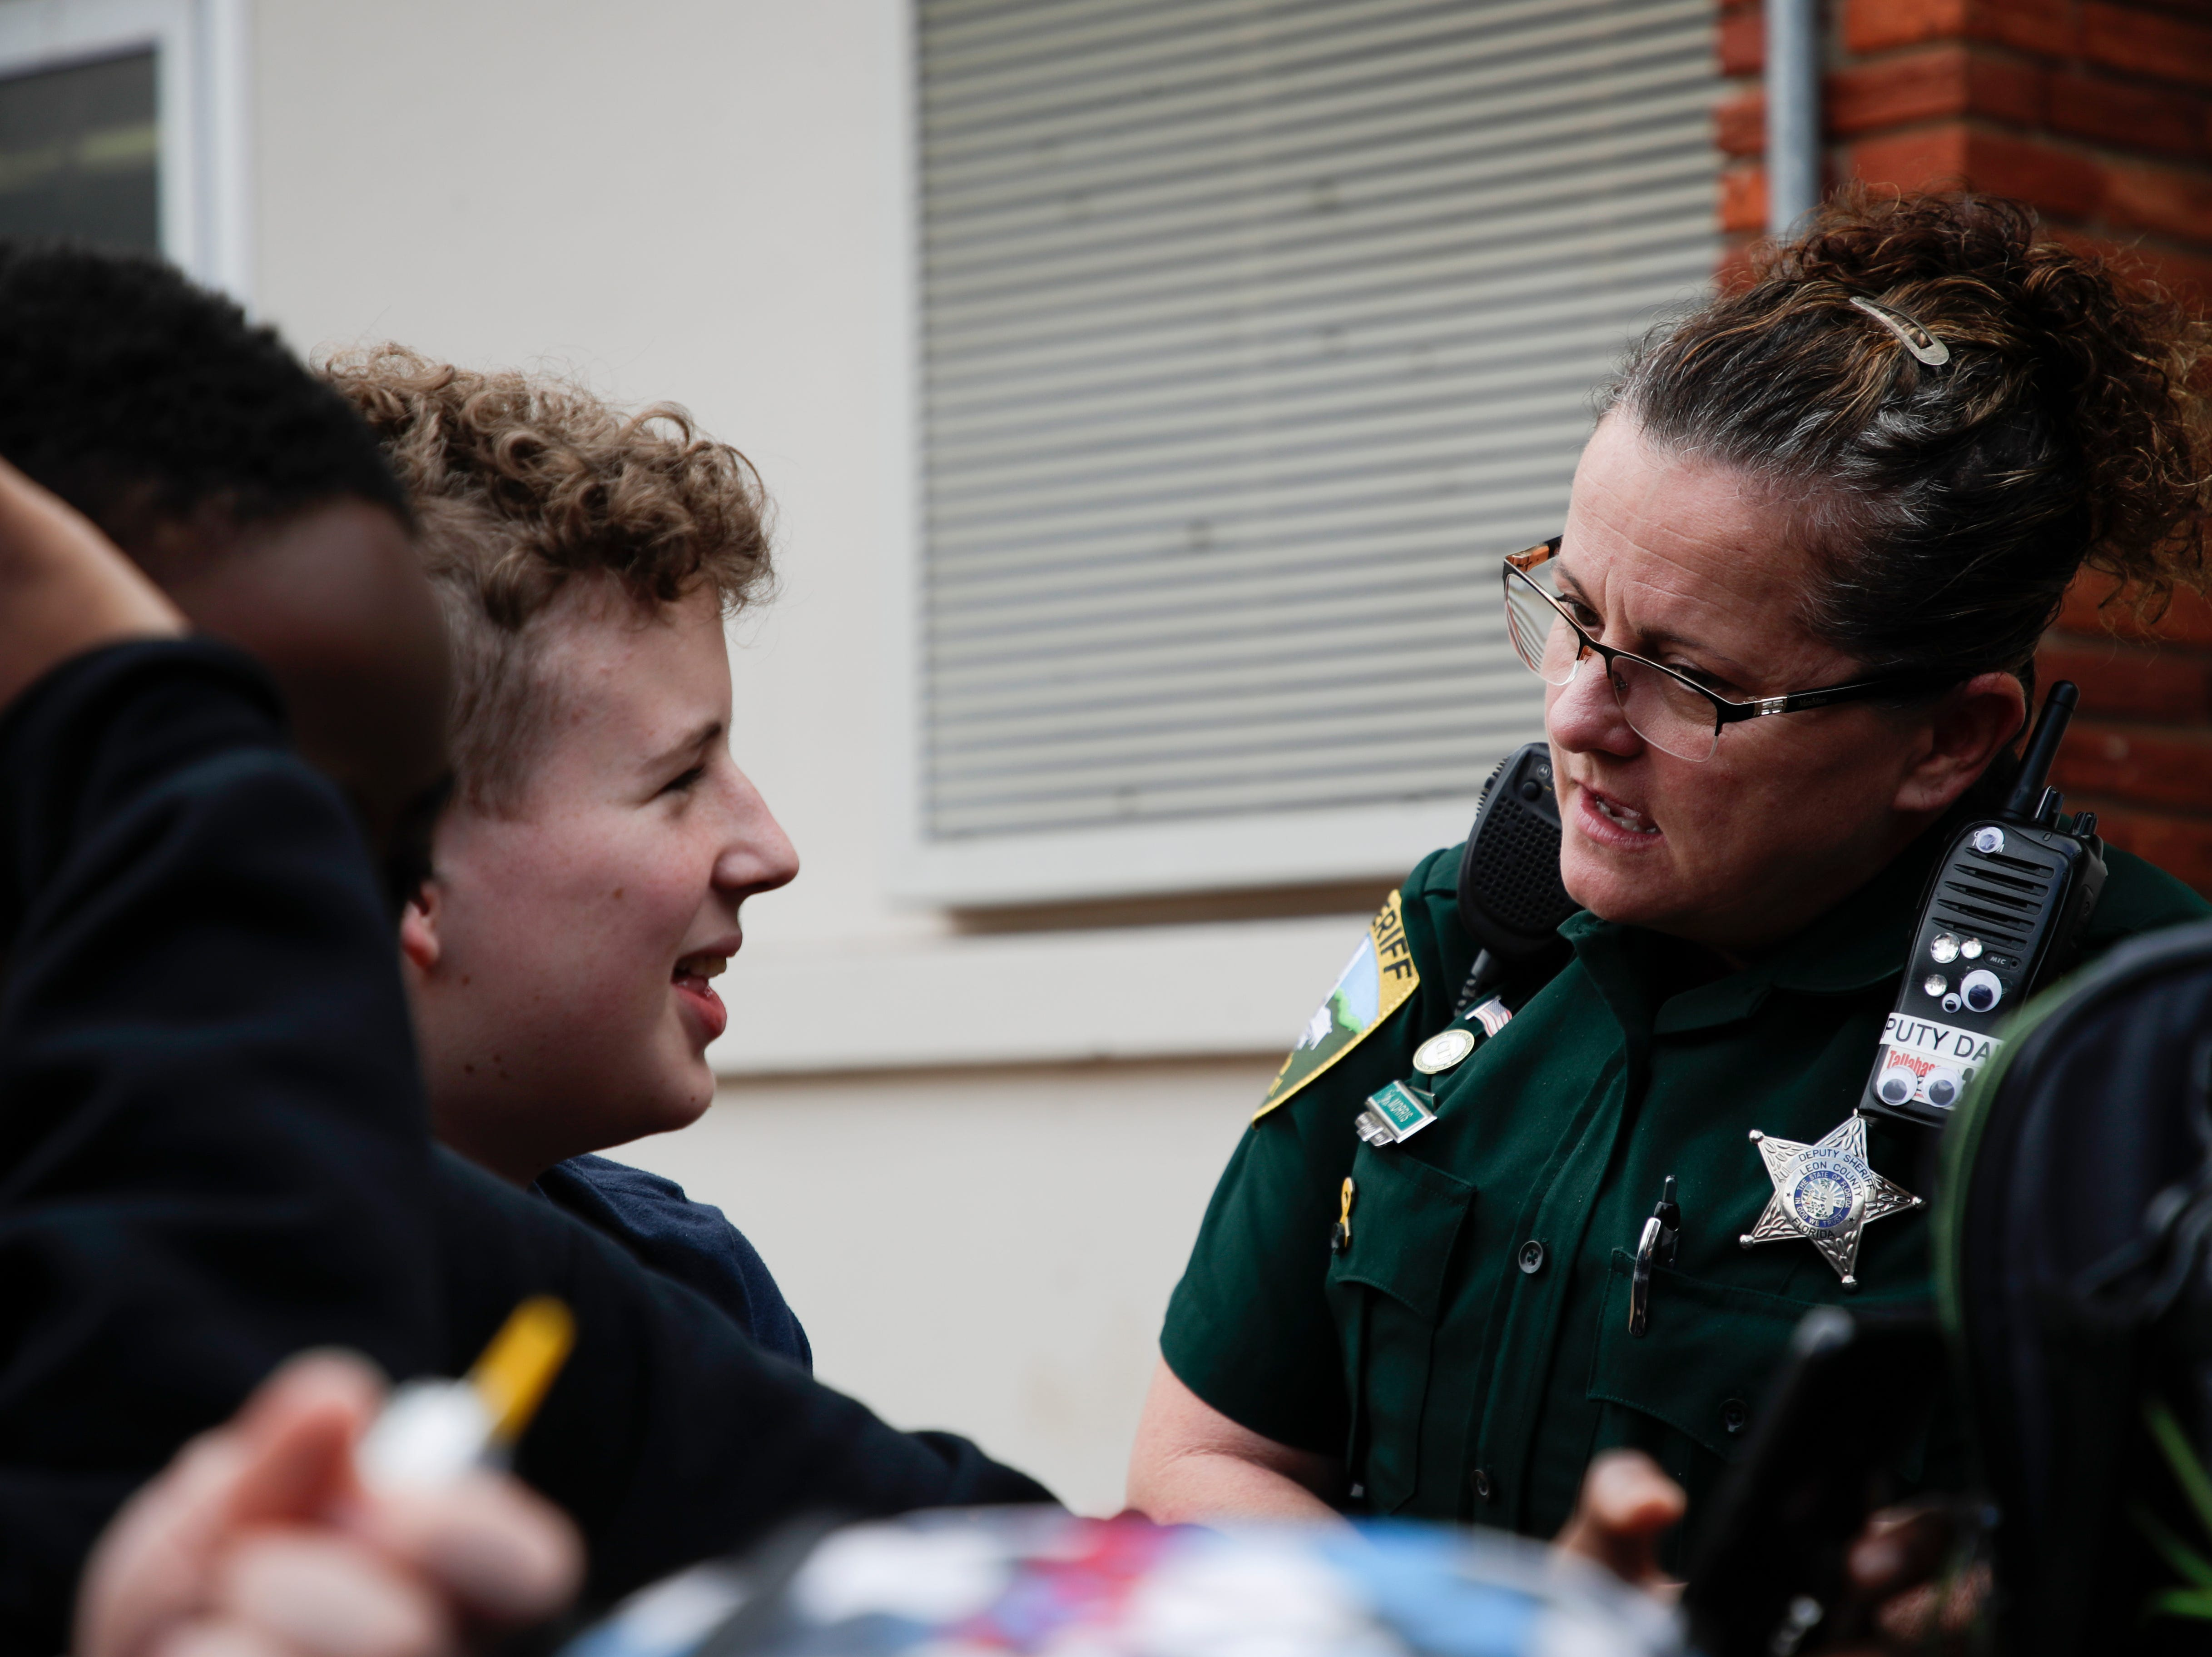 Leon County Sheriff's Department Deputy Jennifer Morris, school resource officer at Cobb Middle School, talks with seventh grader Bobby Elliot during lunch Tuesday, Feb. 12, 2019.